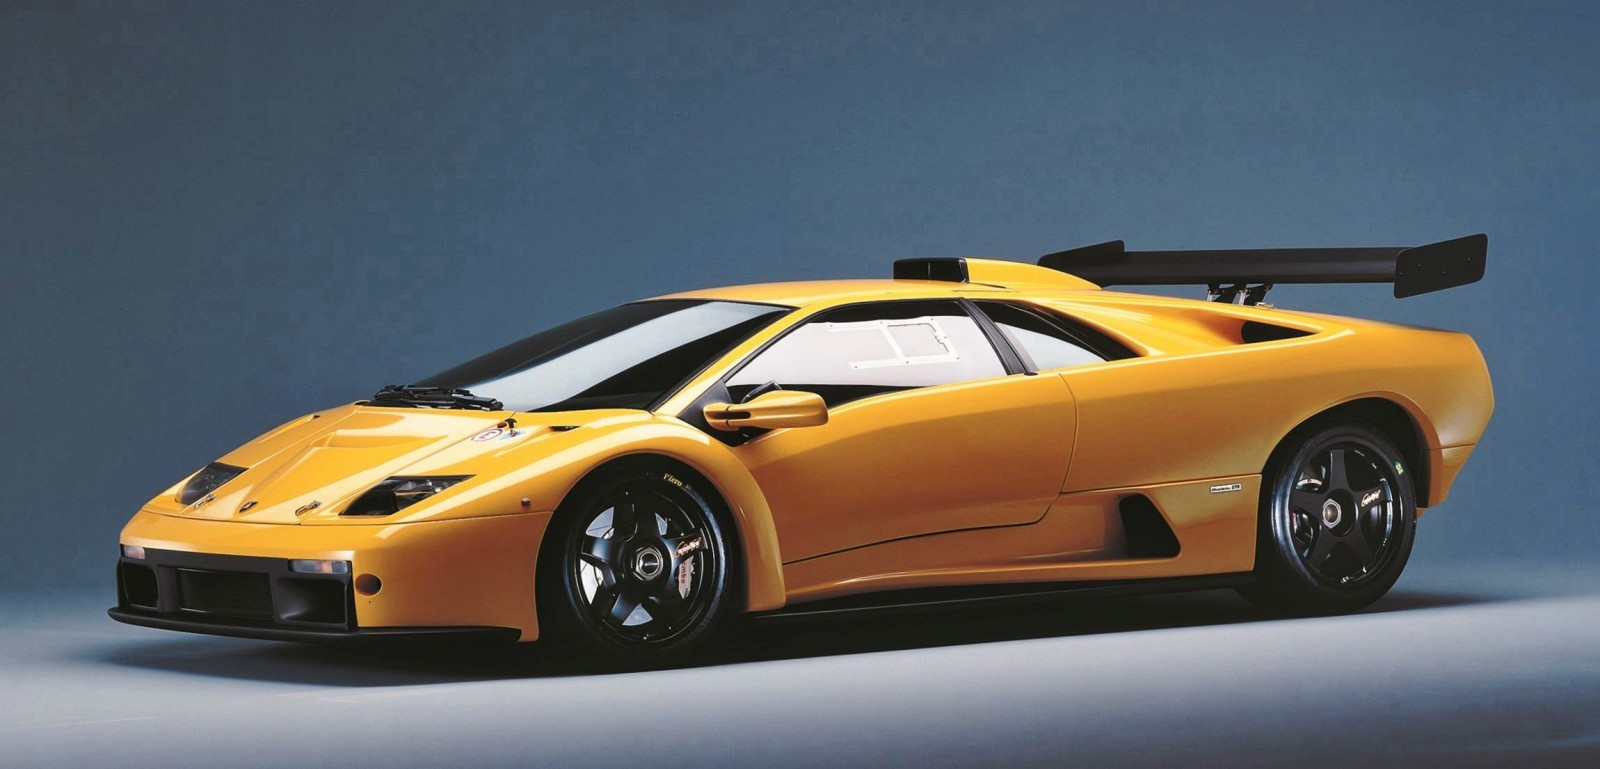 Hypercar Heroes Lamborghini Diablo Evolution Vt To Se Jota To Sv Svr And Roadster Then